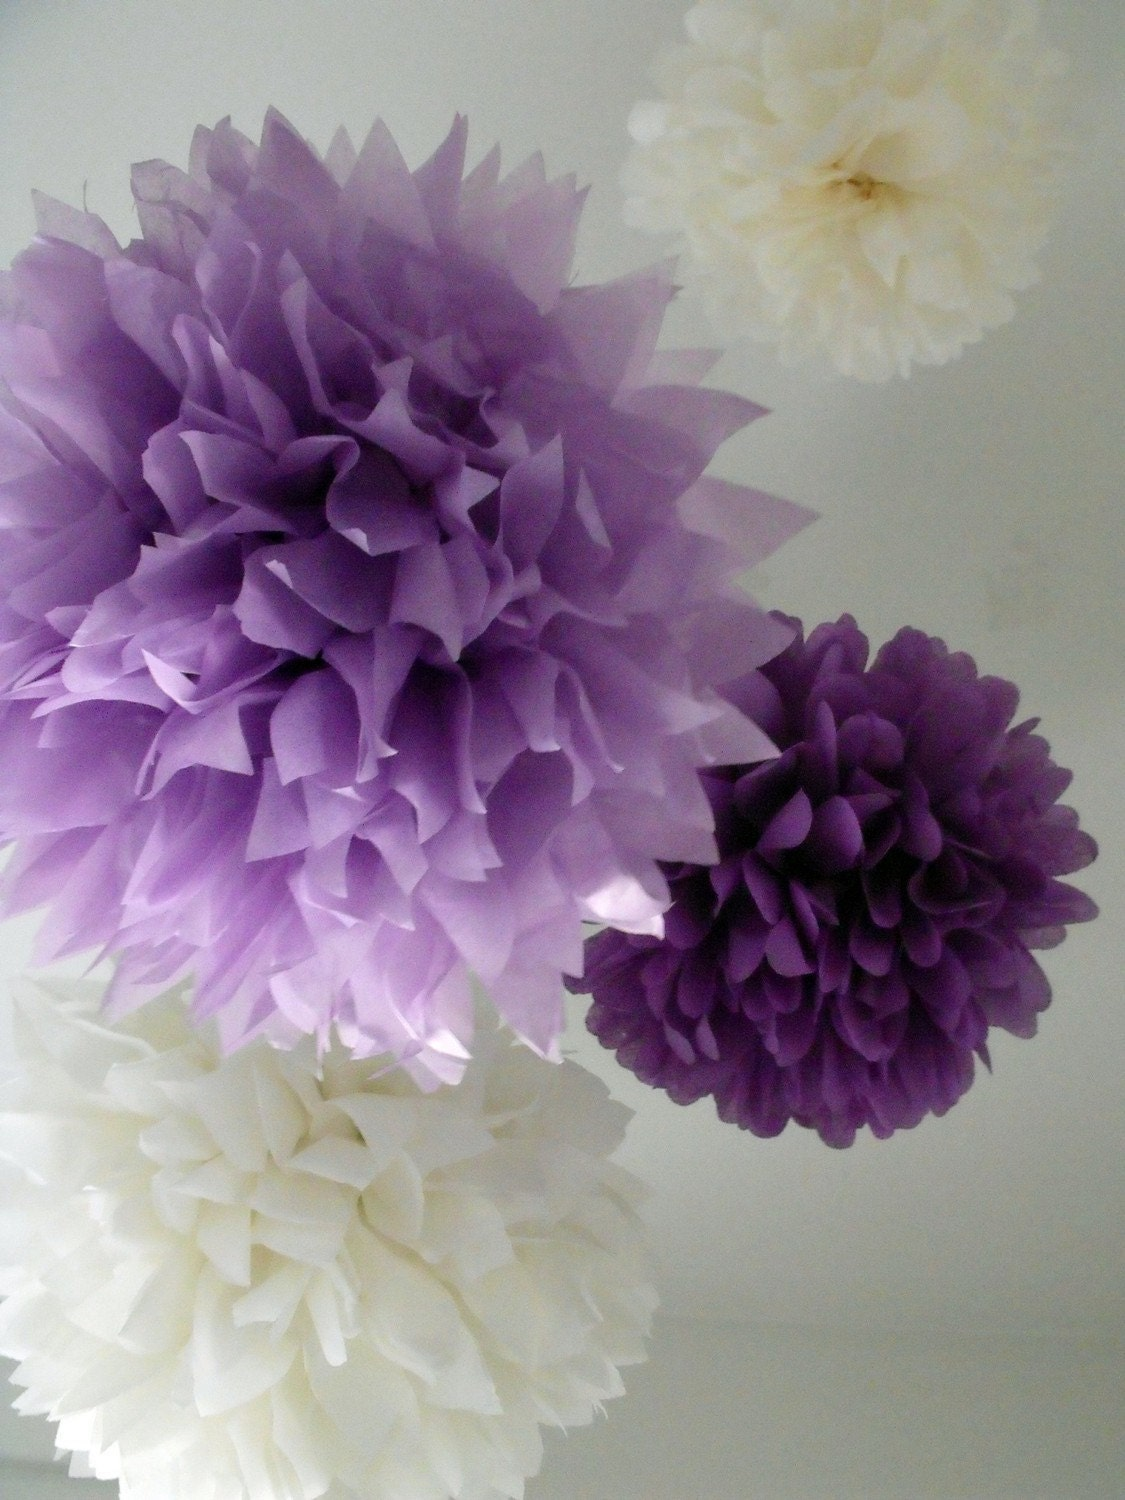 Pompoms paper poms ...  10 Poms ... Pick Your Colors - Budget Diy Craft Kit - pomtree